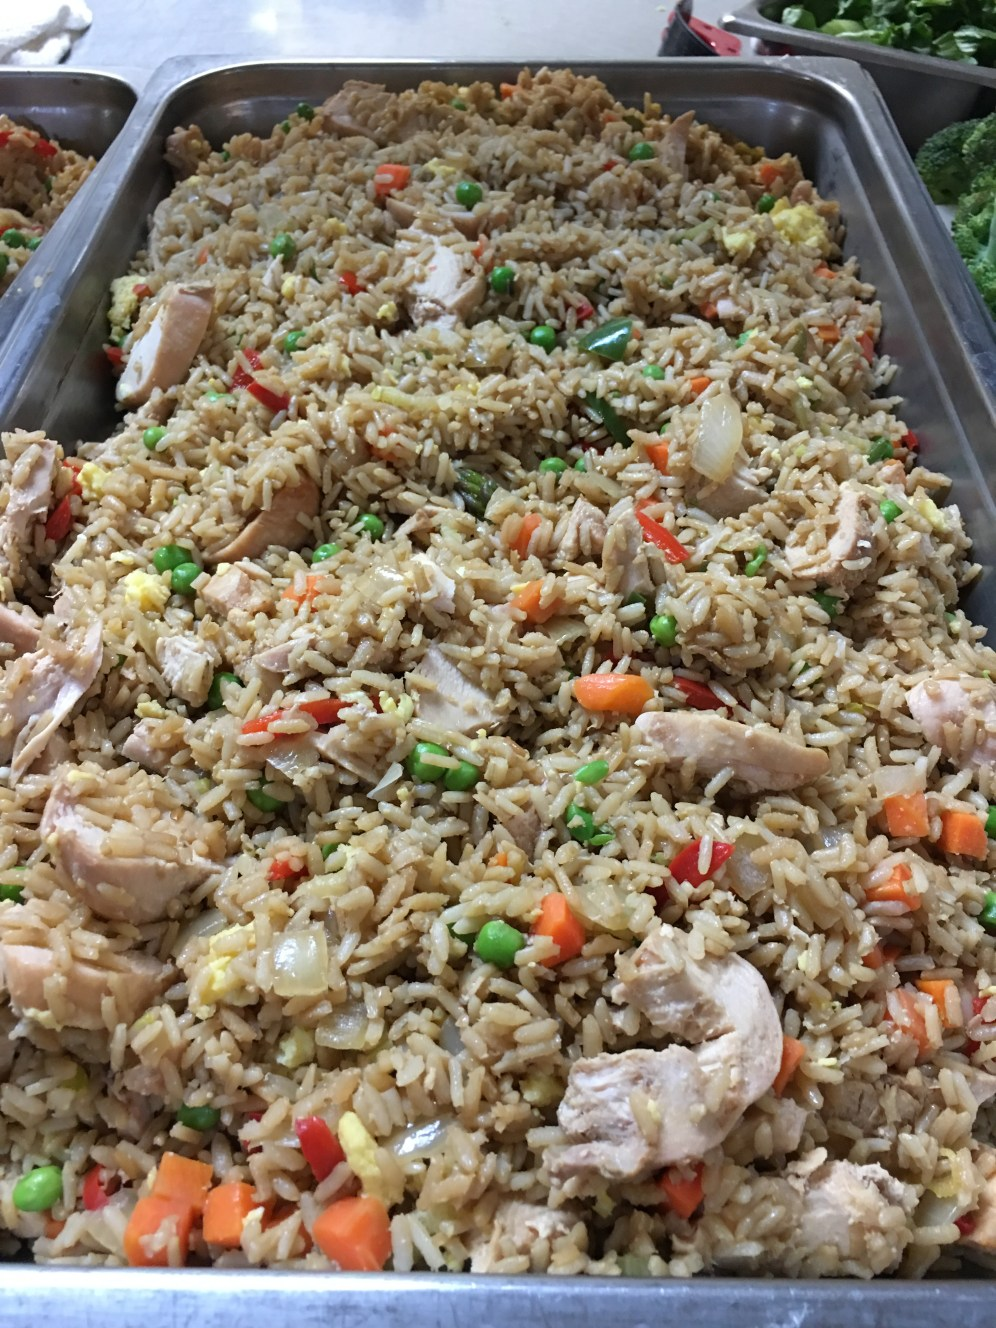 Chicken stir fry made with organic vegetables donated at the first Common Ground workshop. Meals made with the donations collected added to 50 servings of vegetables provided through the Meals On Wheels Program!